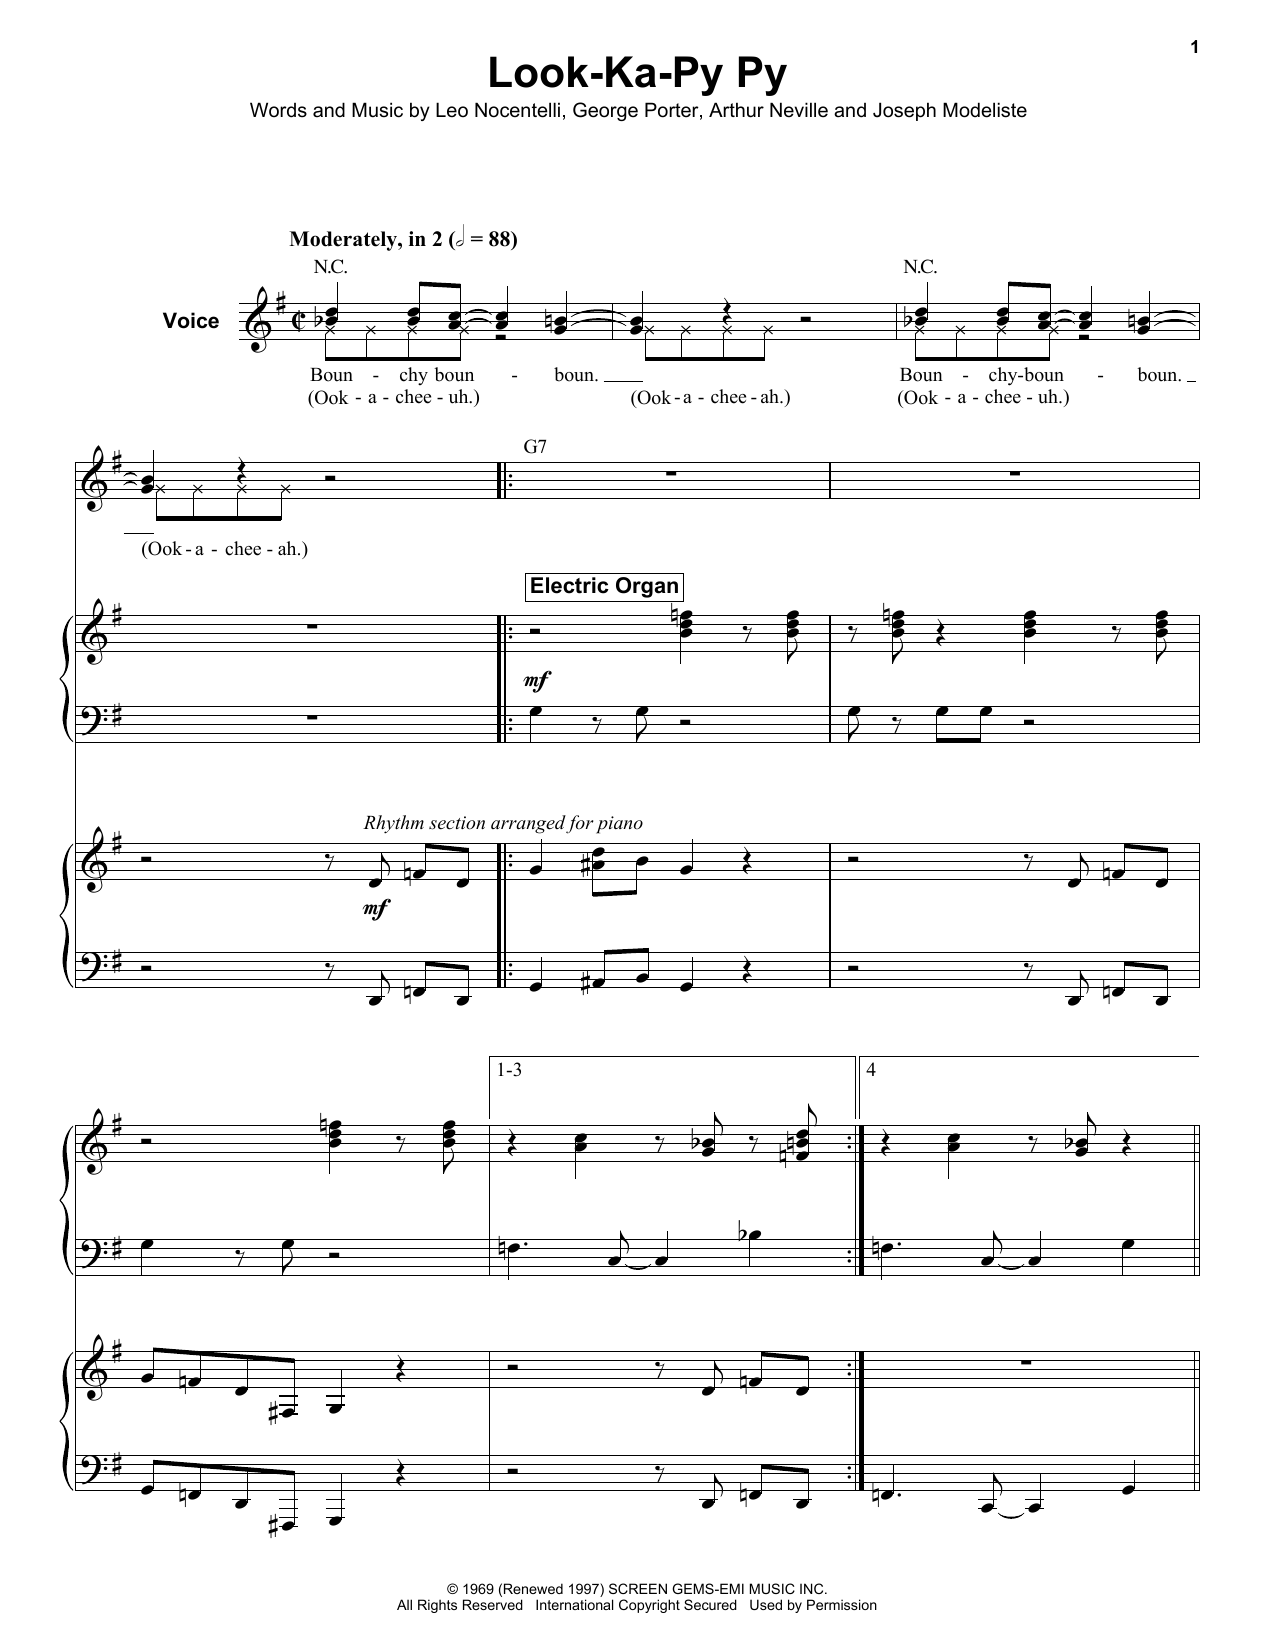 Look-Ka-Py Py Sheet Music